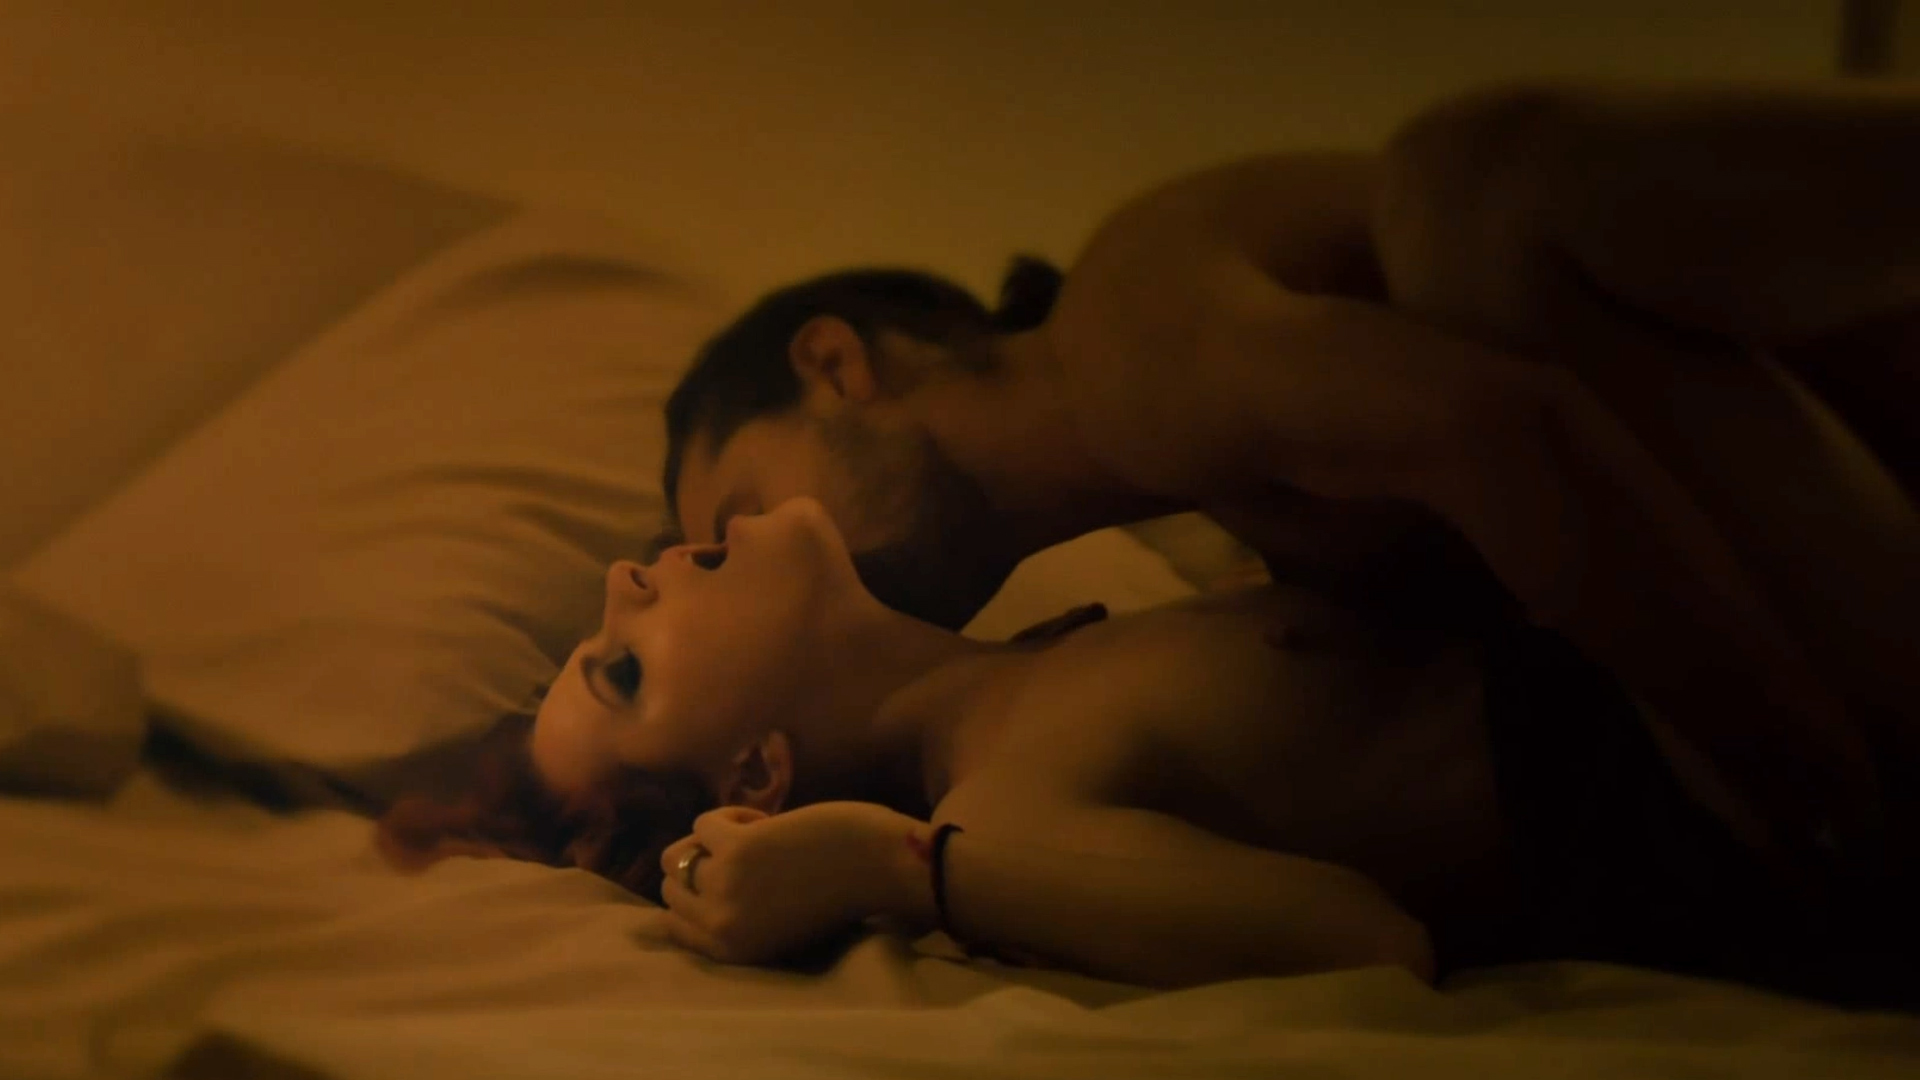 Eva rachel wood sex scenes